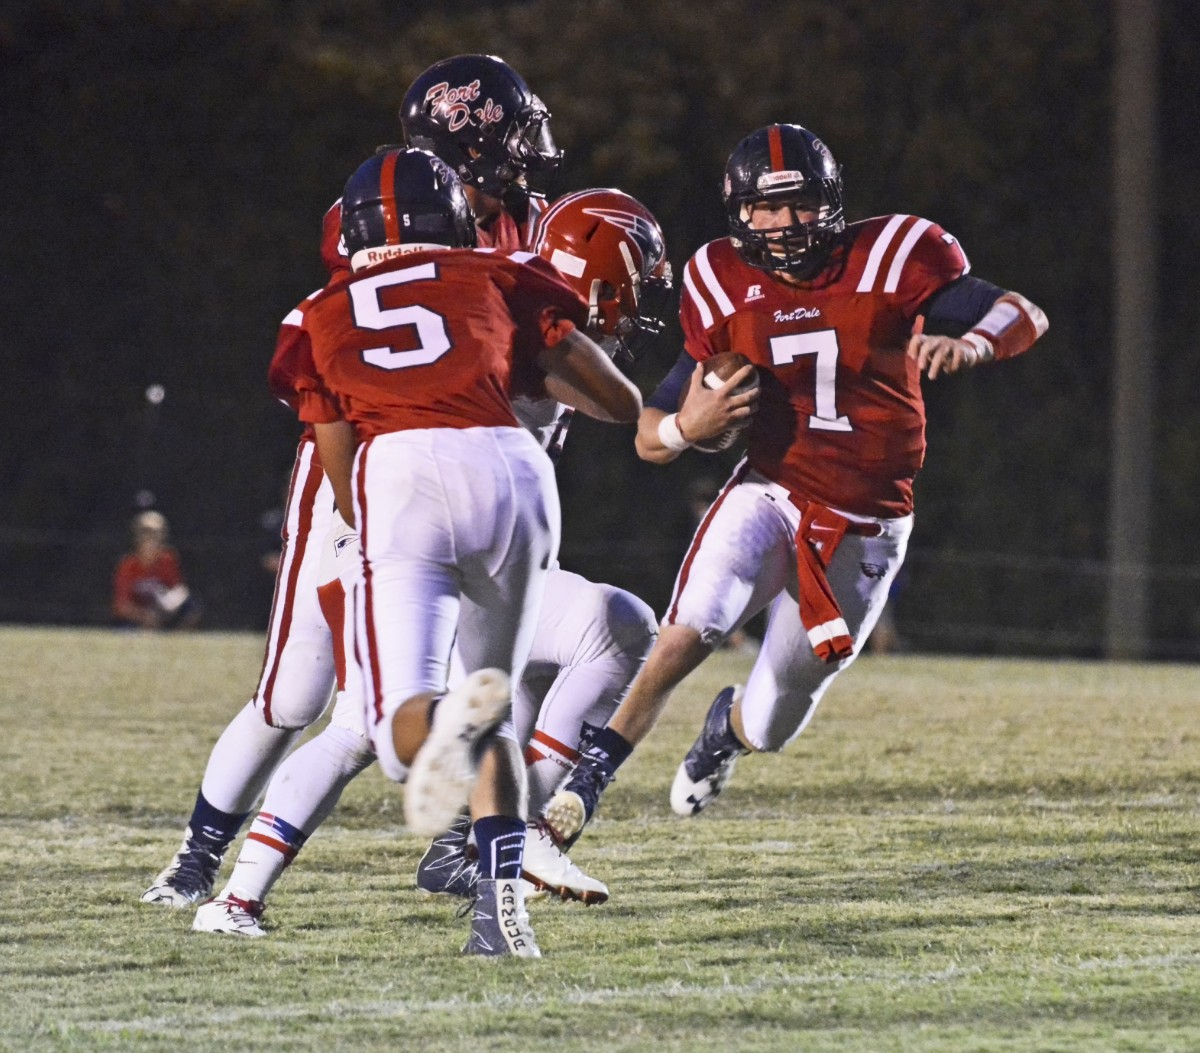 Luke Taylor runs up the middle for big yards with block from TE Trey Coker. (Cecil Folds | The Standard)